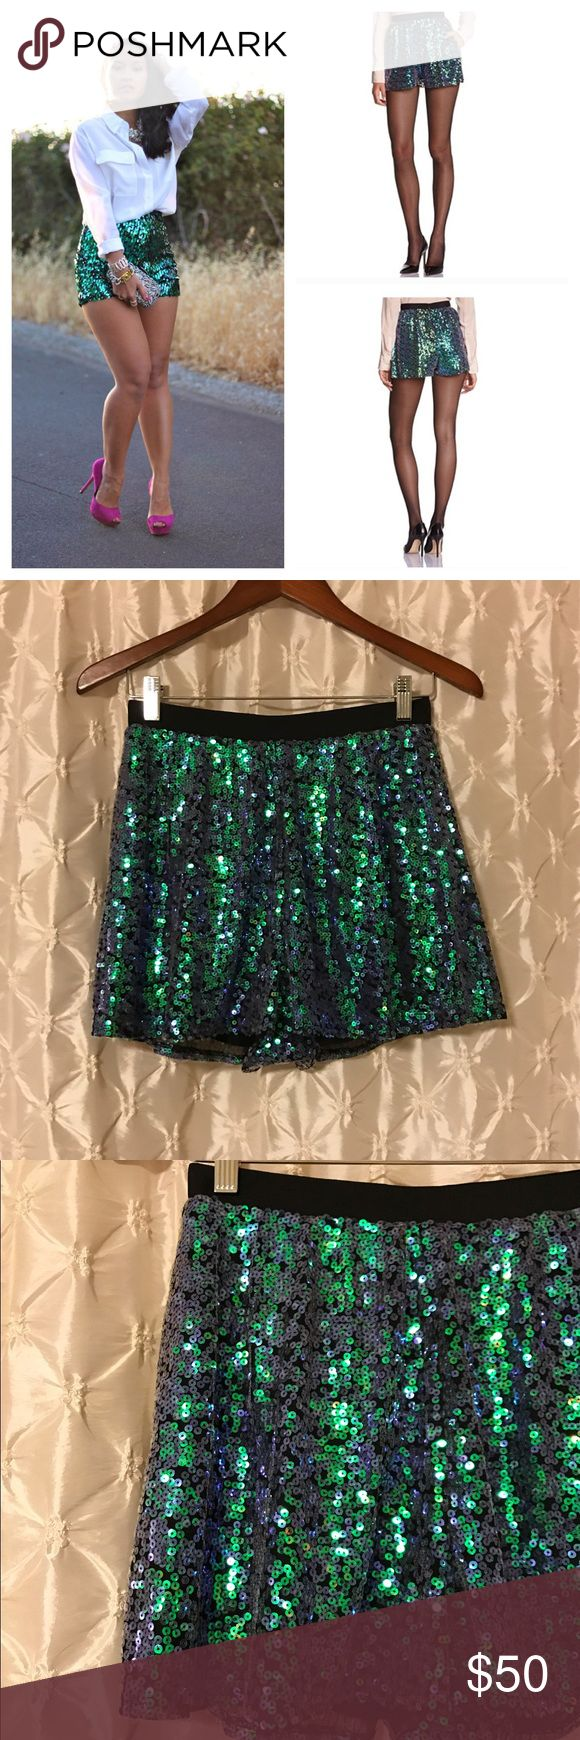 """Bcbgeneration Turquoise sequin shorts You're looking at a new with tags pair of BCBGeneration shorts in size 2. Beautiful! Very pretty turquoise/green/purple sequins remind me of a mermaid! Black waistband, fully lined and zips up the back. Waist laying flat 13.5"""". Length 14"""". 💙offers 💙20% off discount on bundles 🚫paypal/trades BCBGeneration Shorts"""